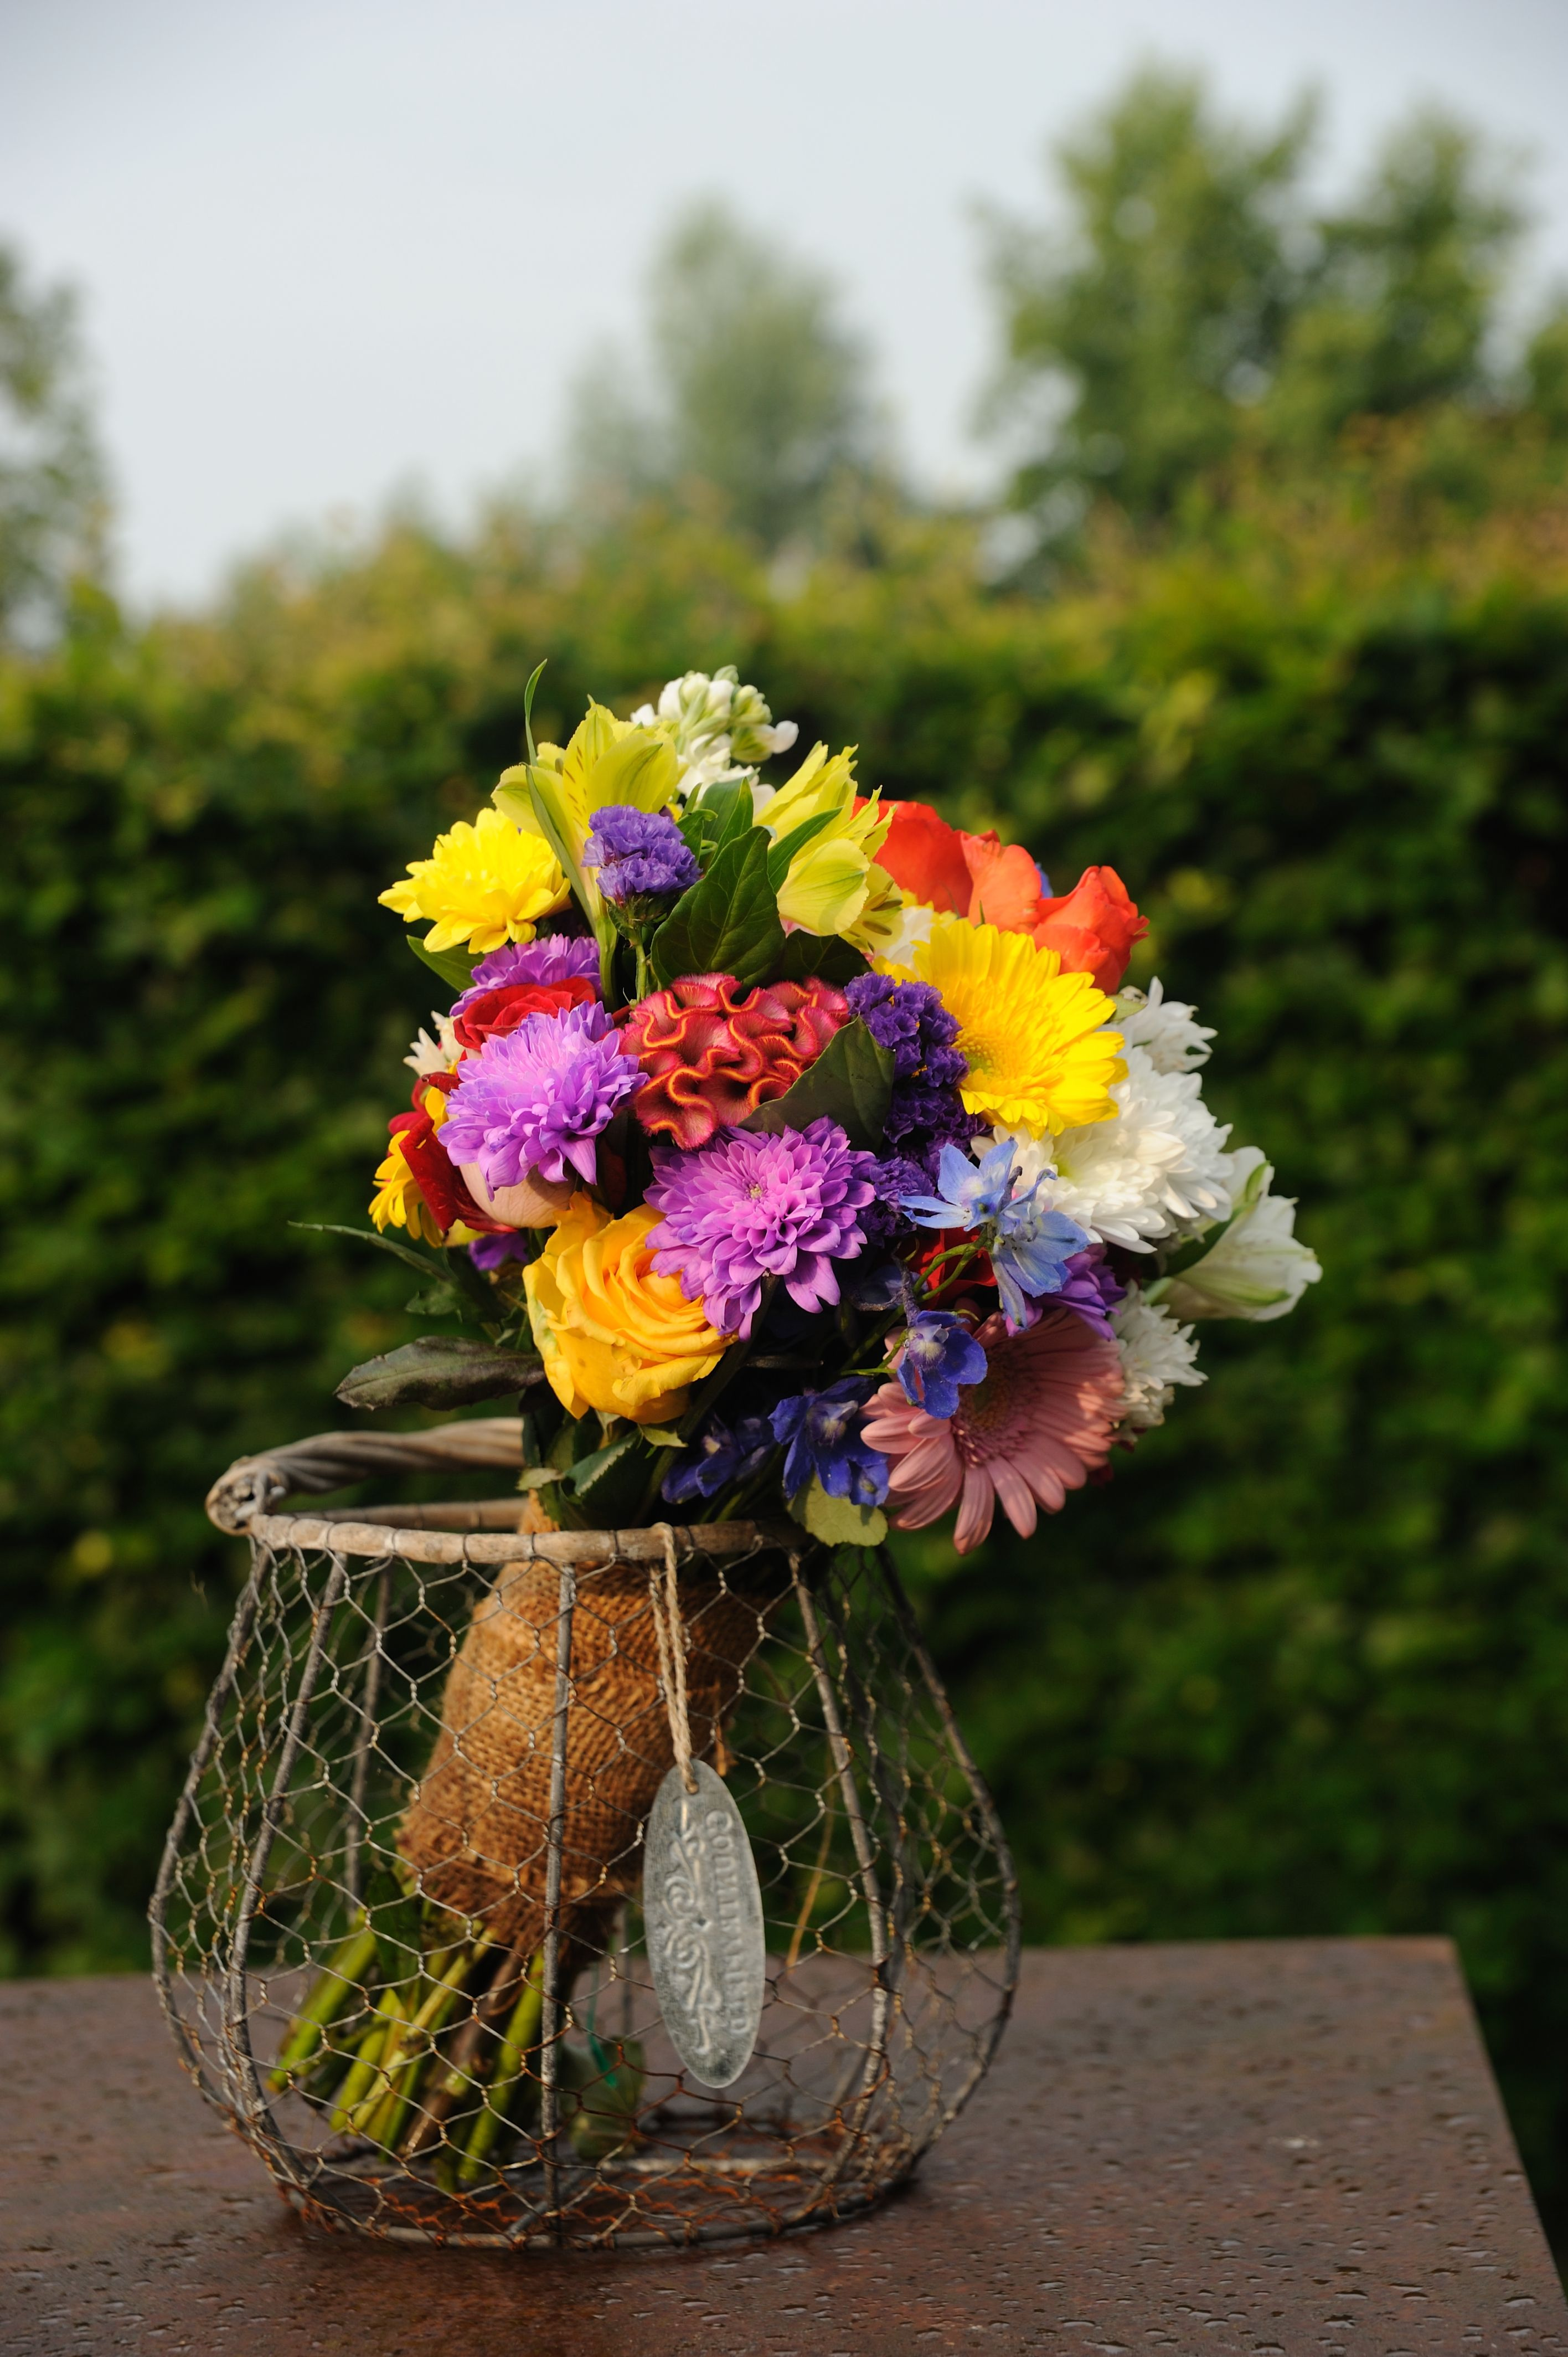 062112 Made My Own Wedding Bouquet With Very Cheap Flowers From